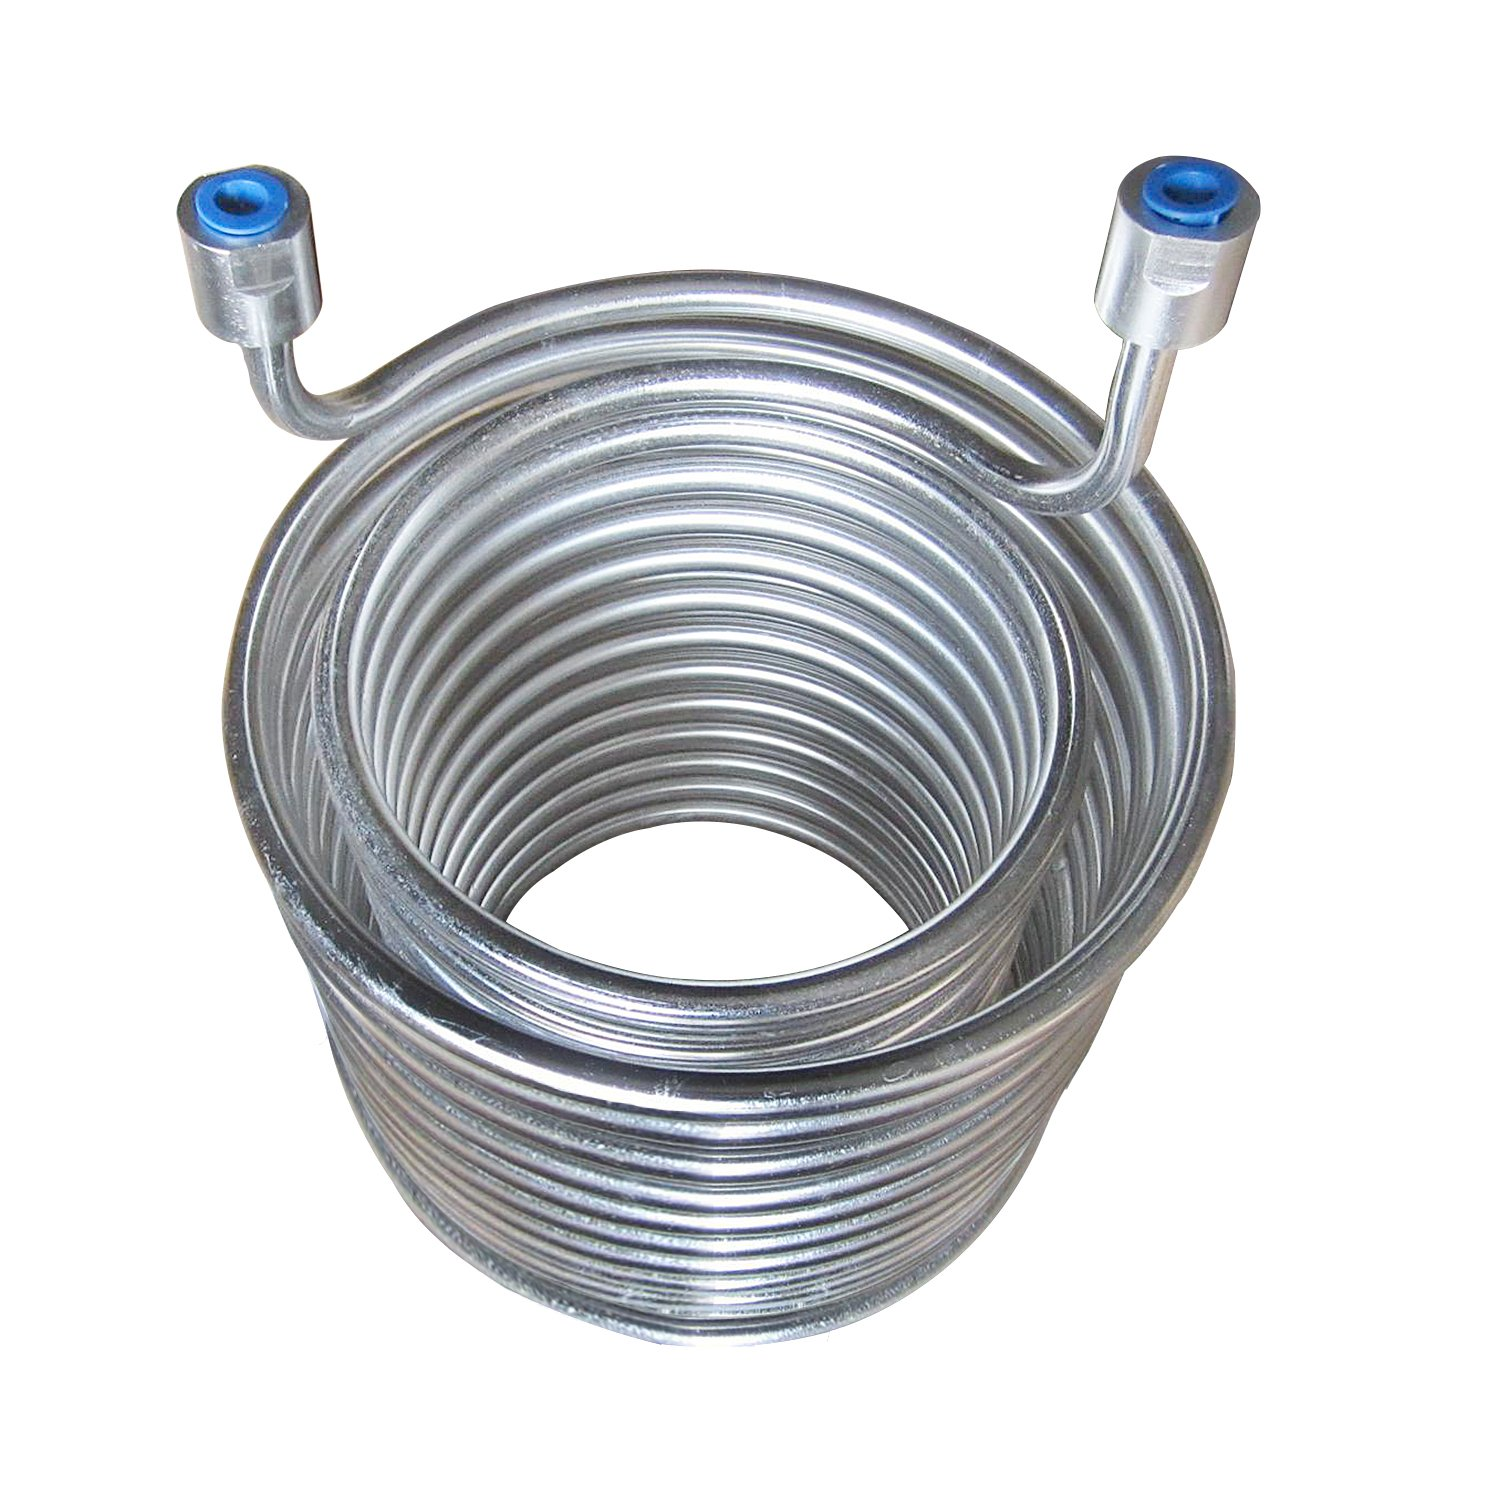 HFS (R) SS 304 Condensing Coil - 3/8'' diameter with 3/8'' NPT